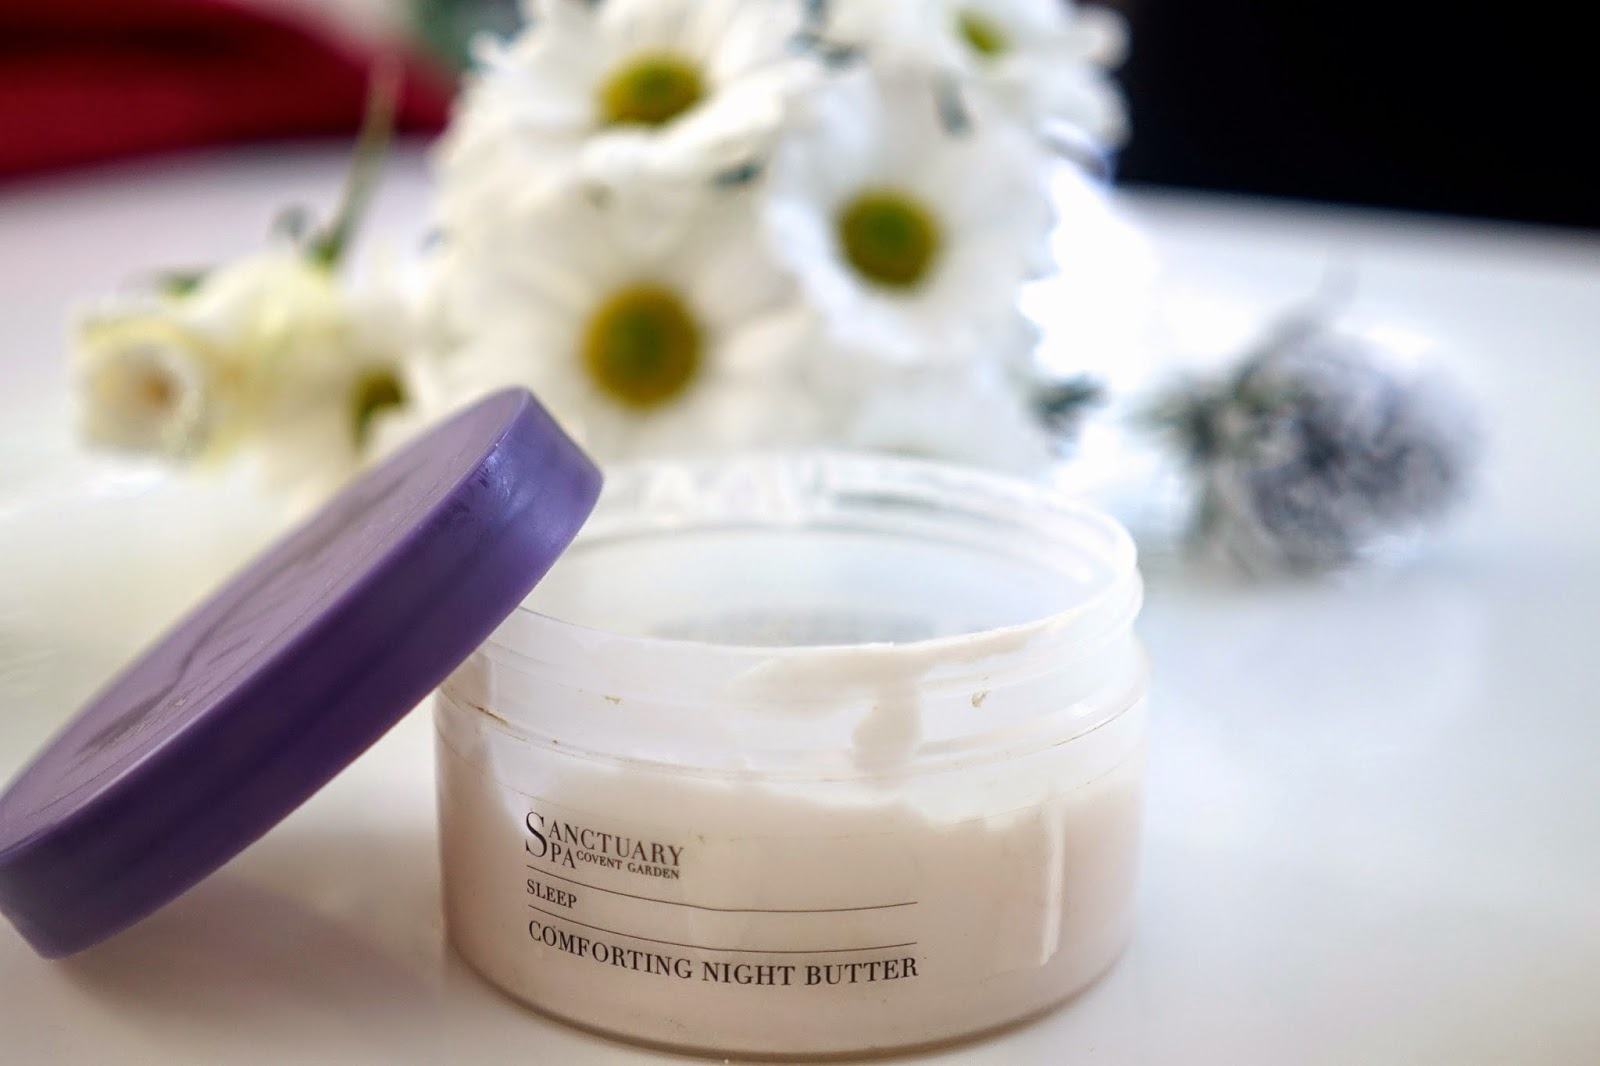 sanctuary spa sleep comforting night butter